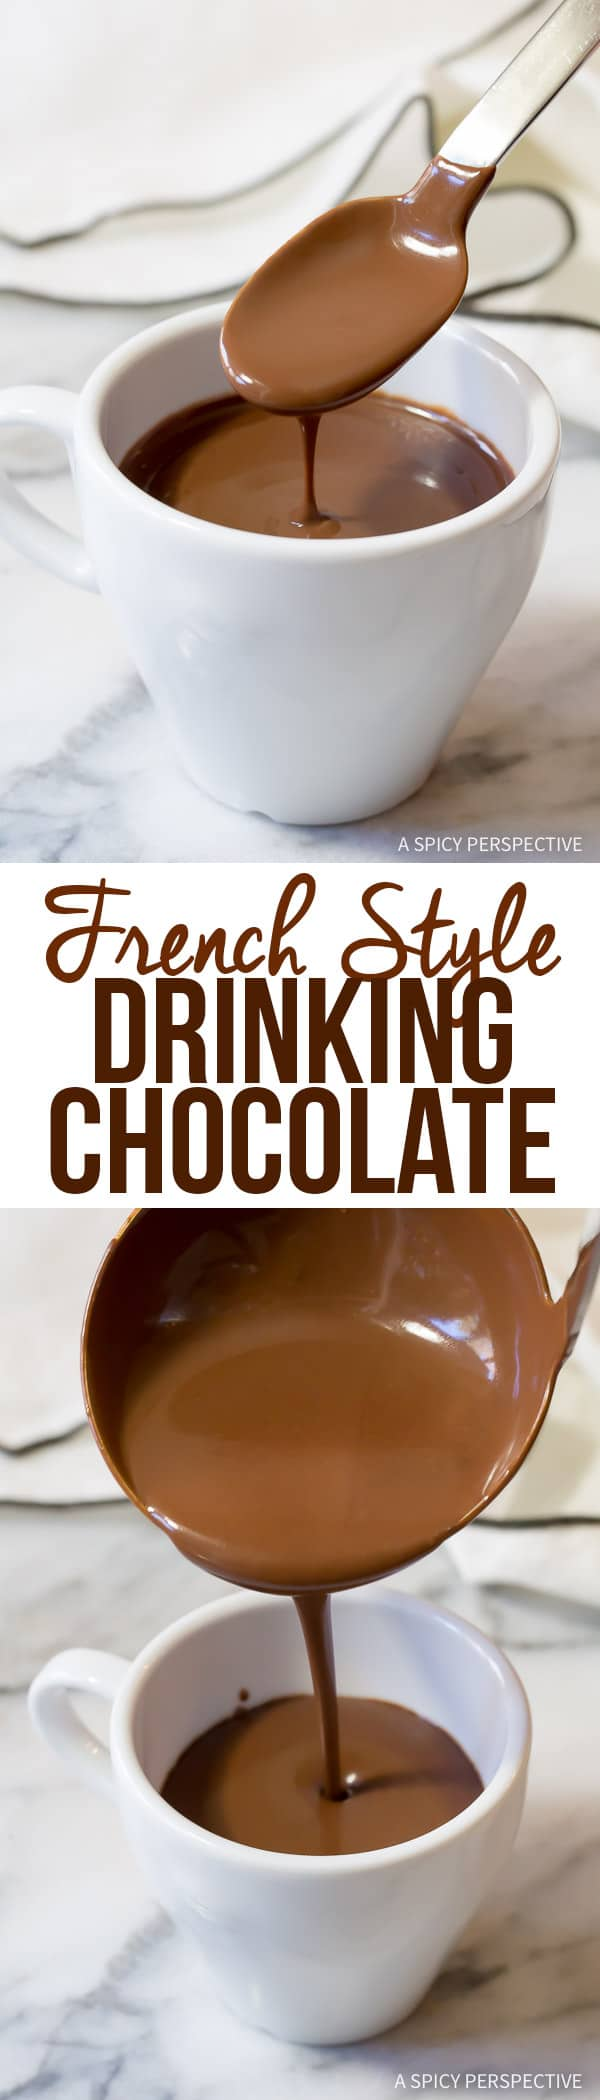 Luxurious French Hot Chocolate Recipe (Drinking Chocolate)   ASpicyPerspective.com